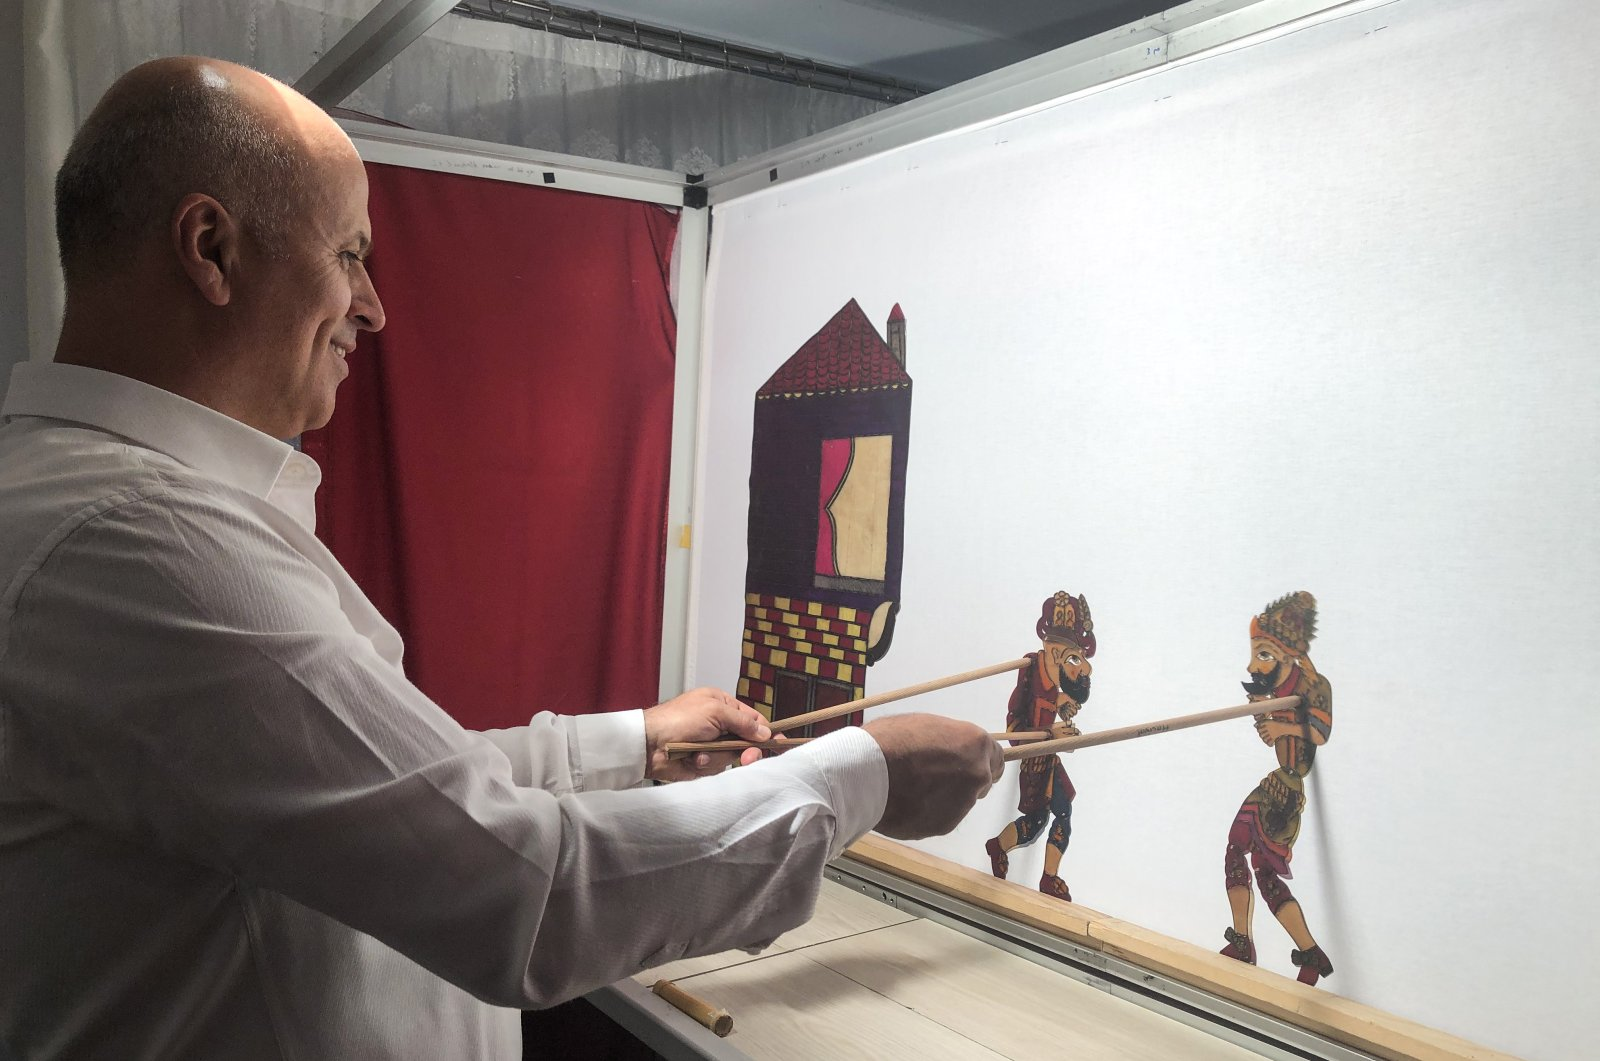 Suat Veral performs a shadow play with the Karagöz and Hacivat characters, in this undated photo. (AA Photo)